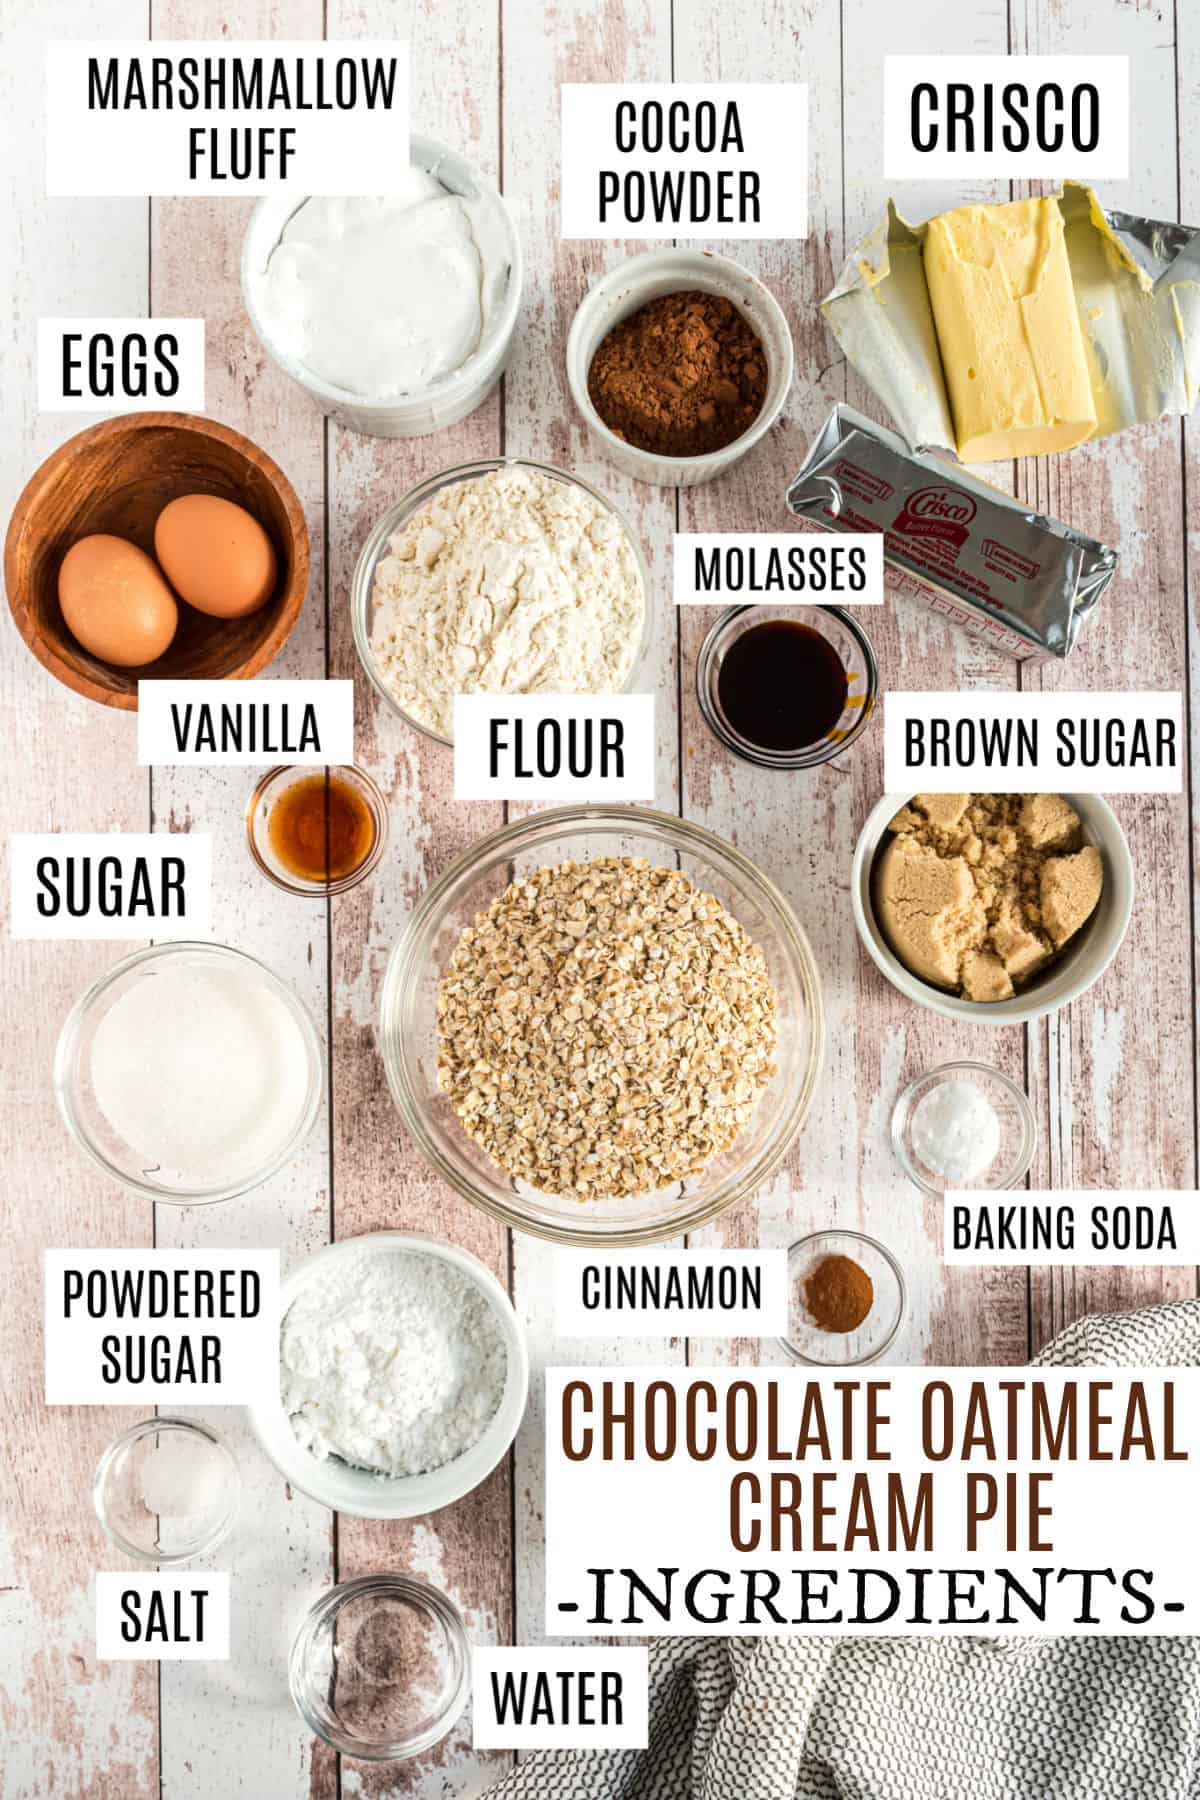 Ingredients needed for chocolate oatmeal cream pies.